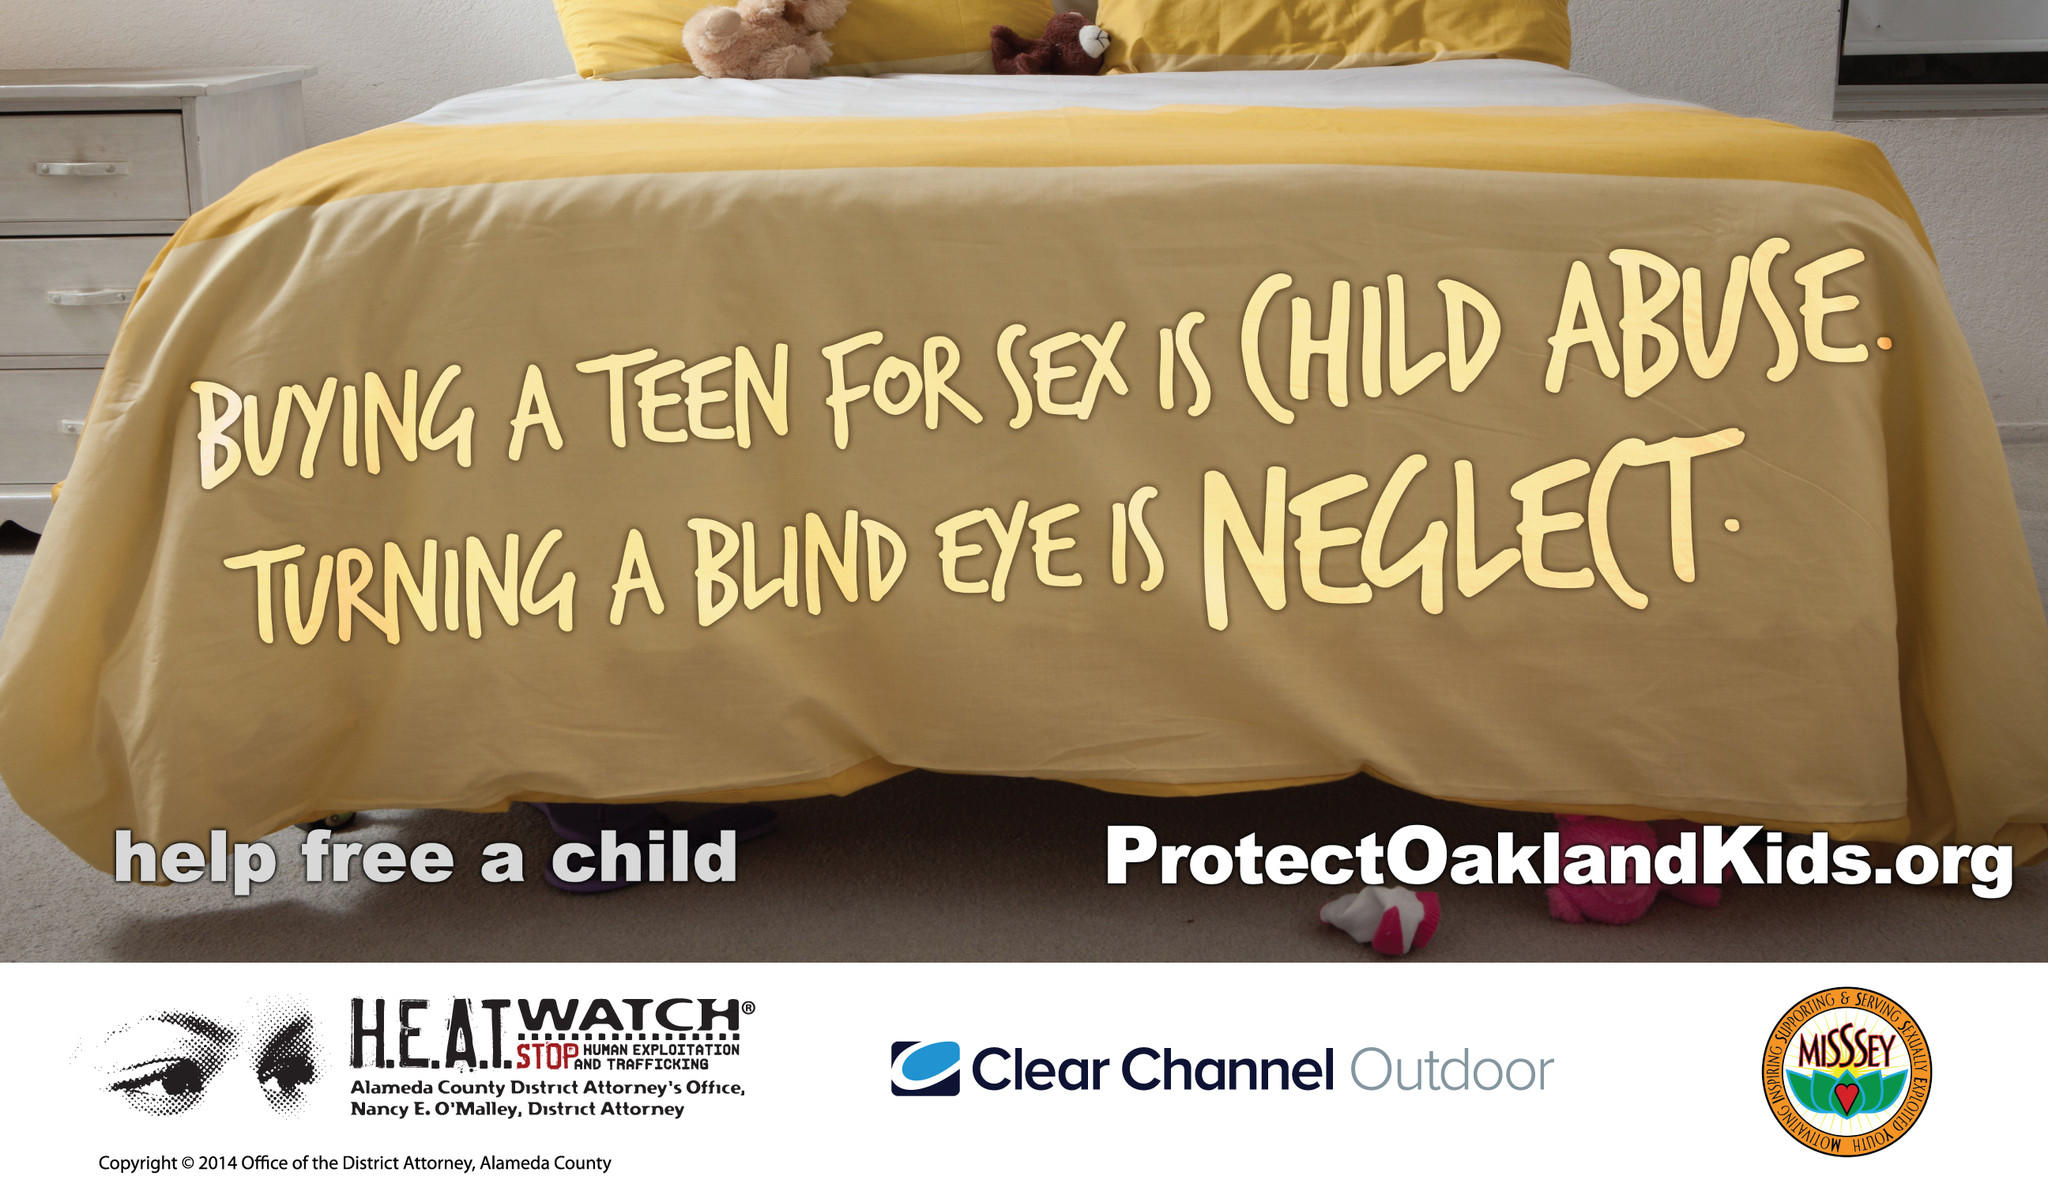 Shown is one of a host of billboards created by Clear Channel Outdoor for a campaign with the Alameda County district attorney and a youth organization called MISSSEY to end child-sex exploitation in Oakland.